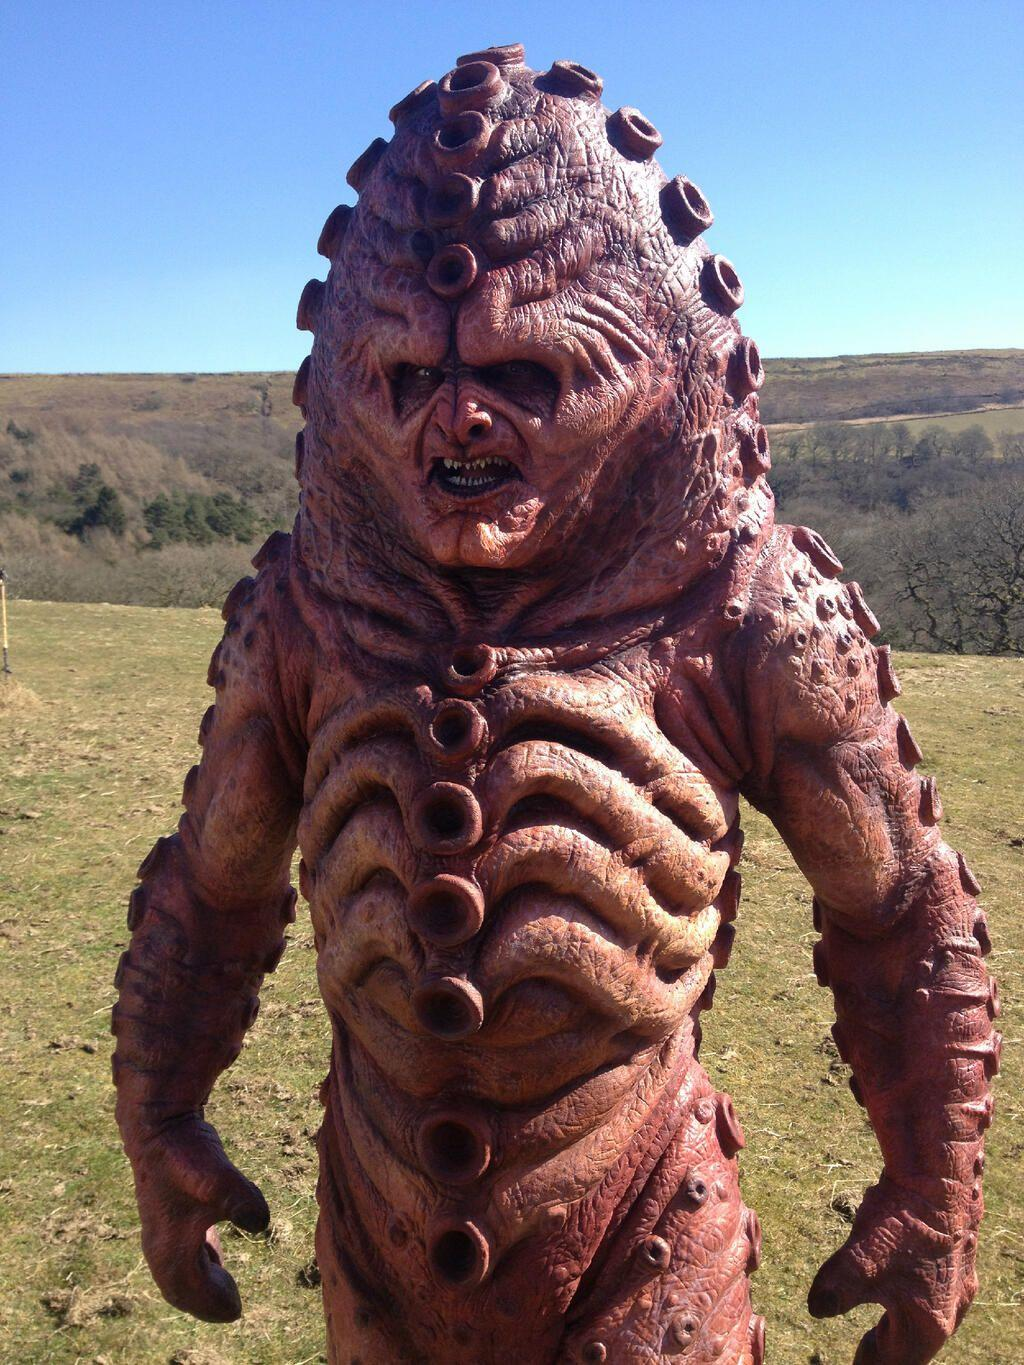 Zygon revealed at filming. (Credit: BBC)